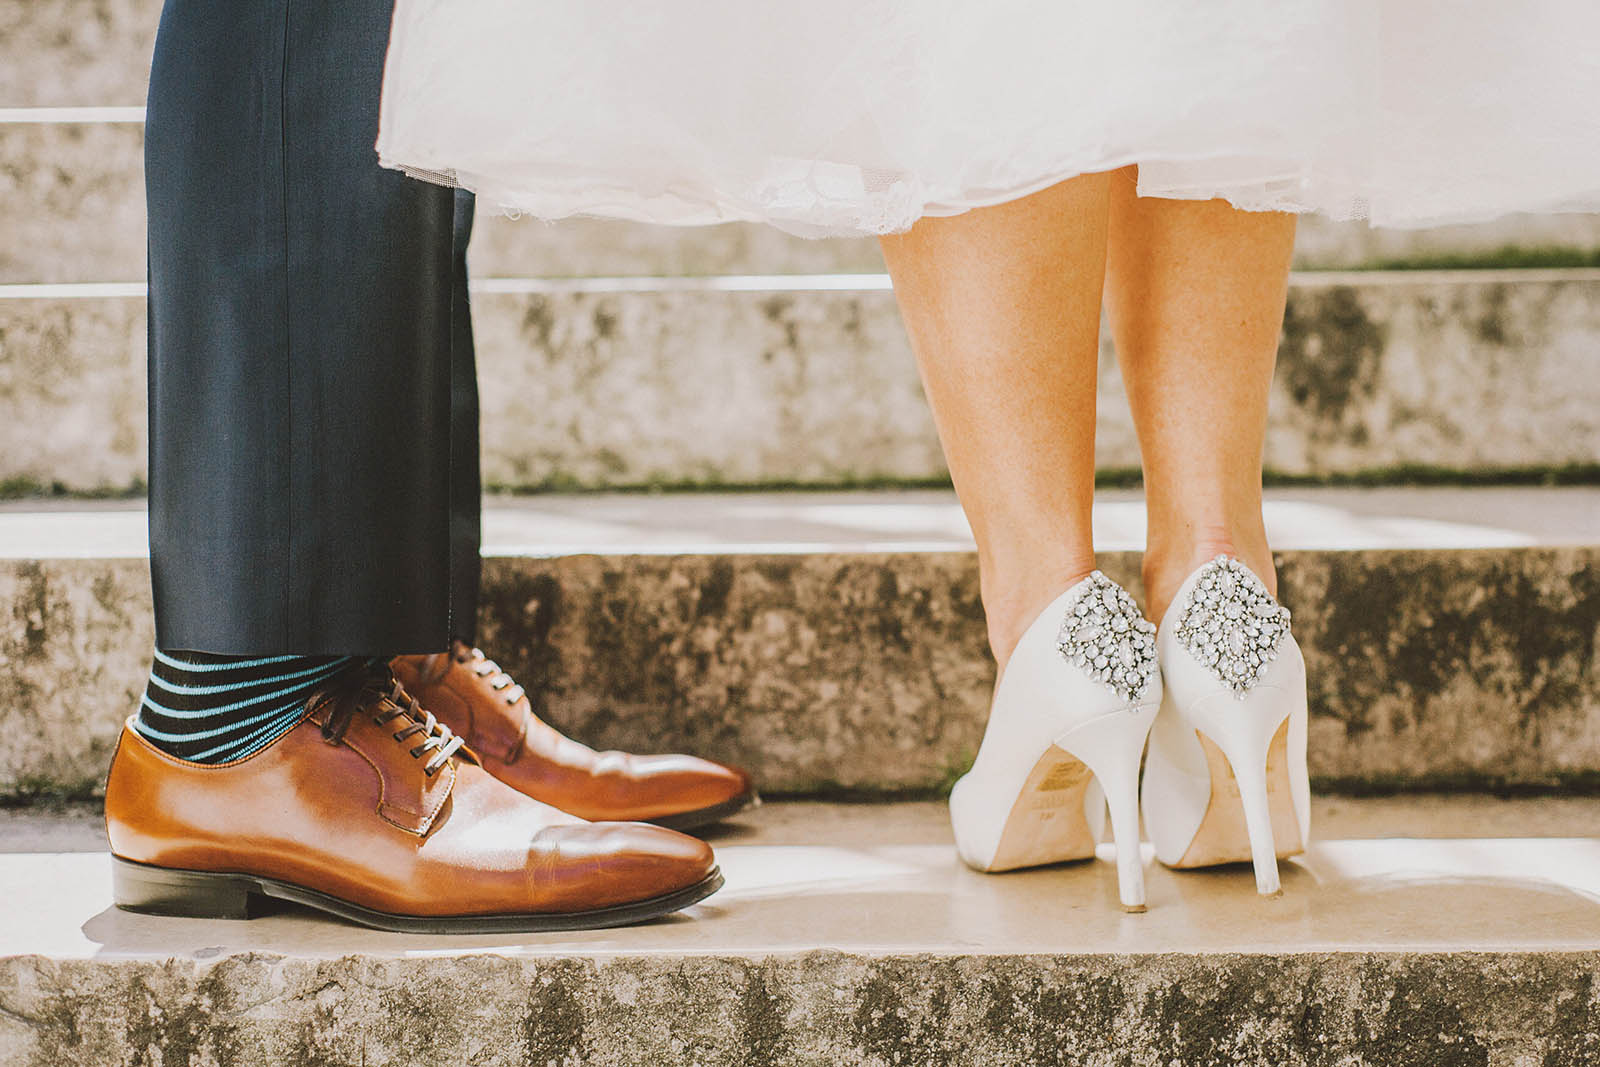 Fashionable Footwear | Springtime Paris Elopement at Parc des Buttes Chaumont